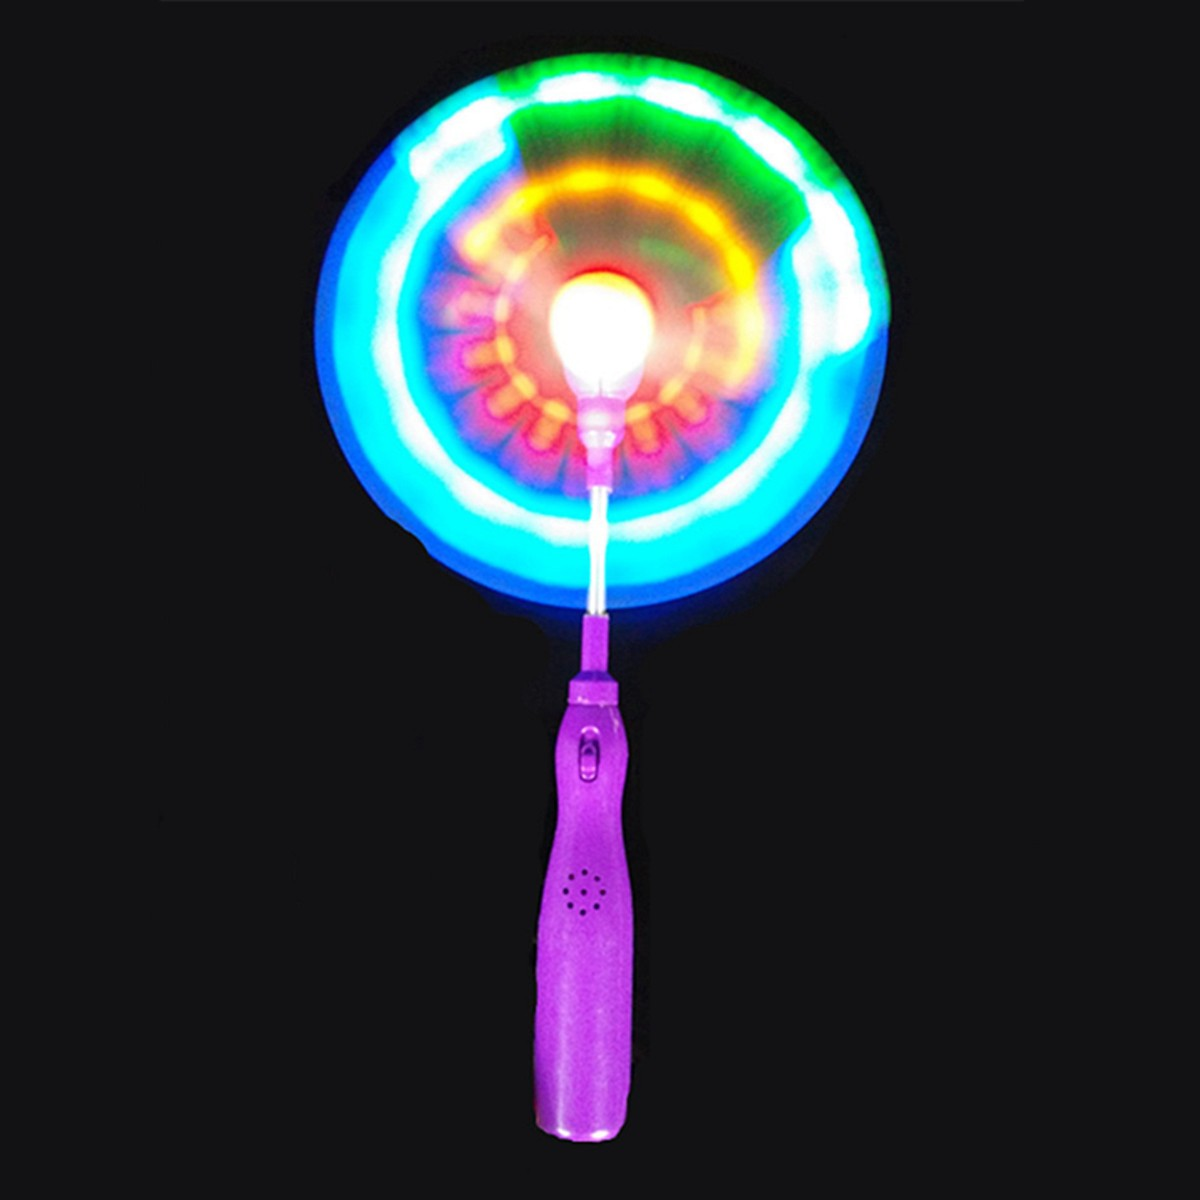 light up led rainbow spinning windmill glows toy forpresent gift party. Black Bedroom Furniture Sets. Home Design Ideas